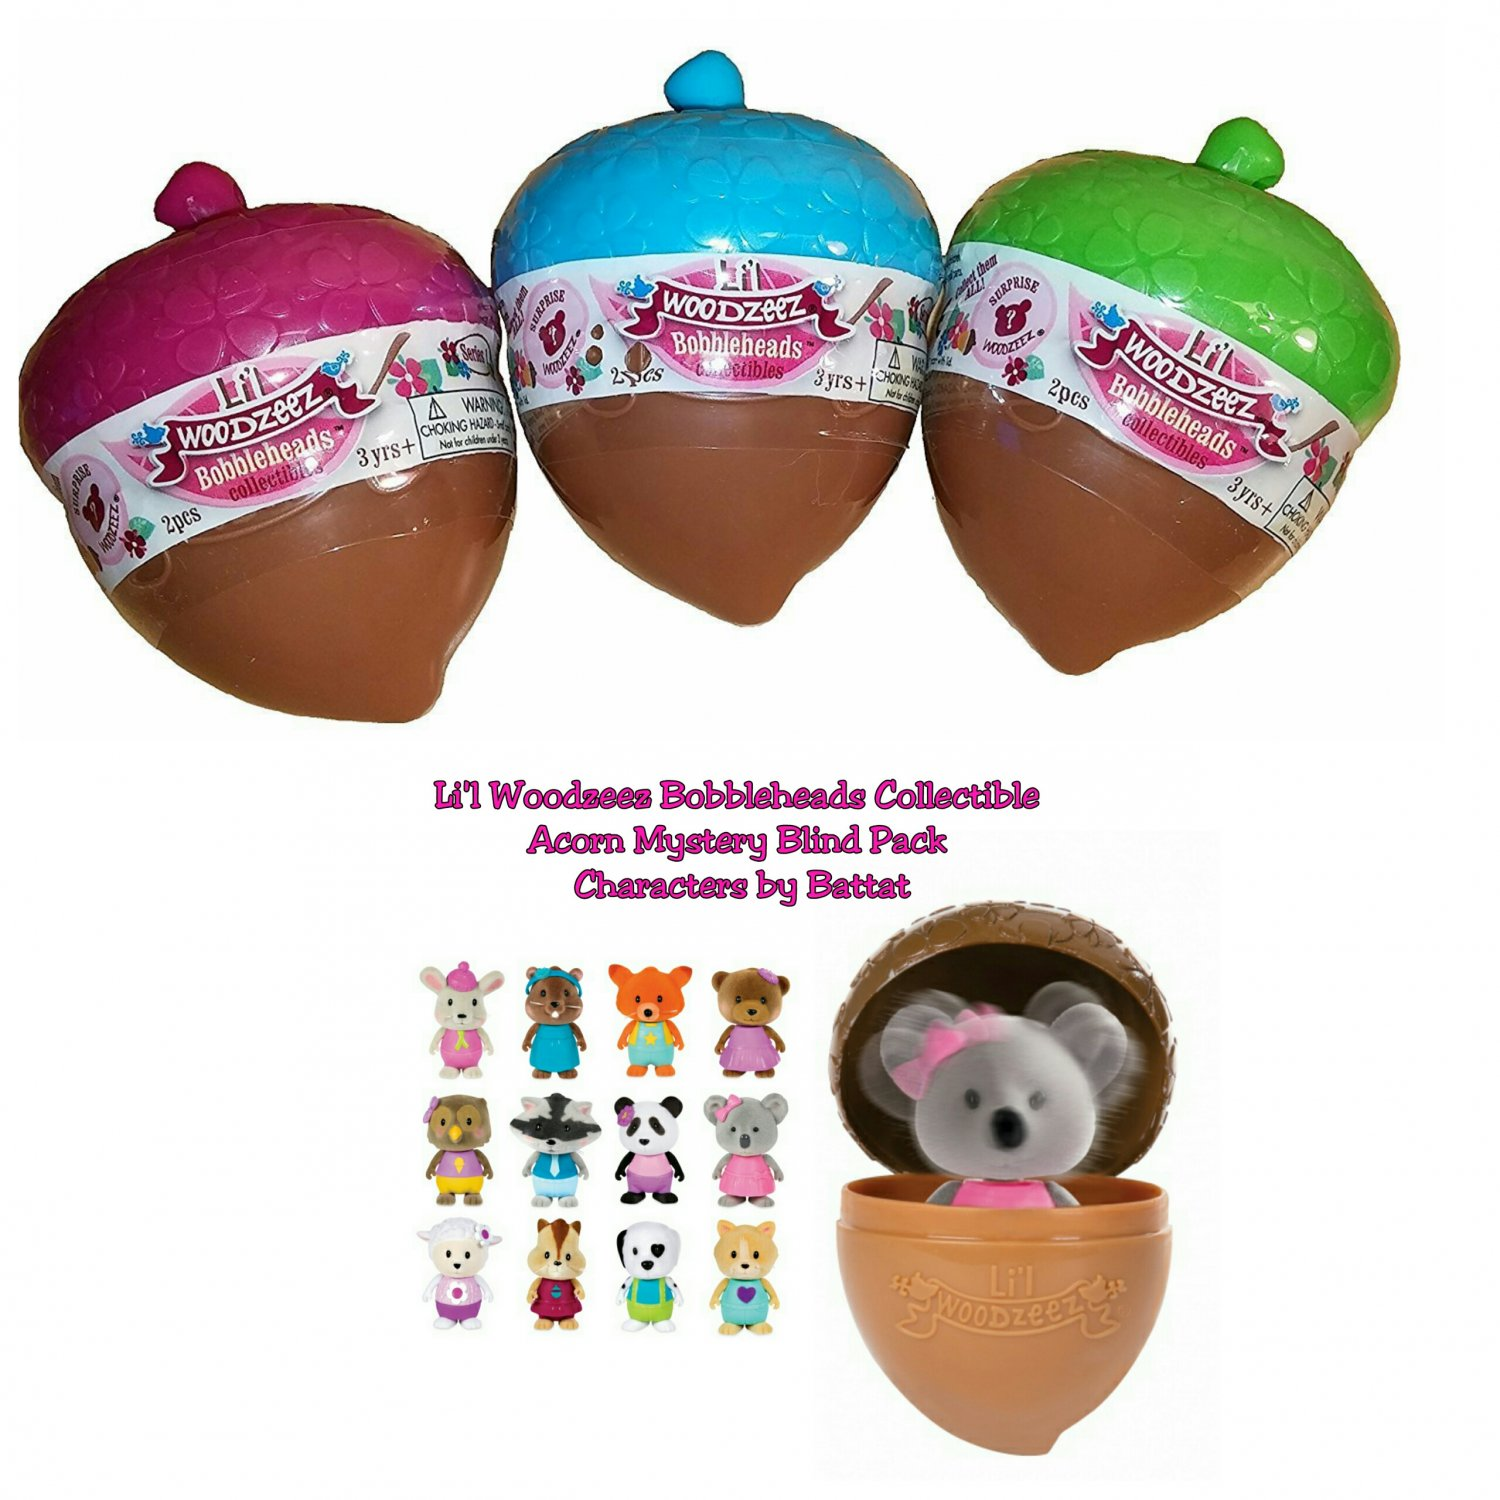 Lil Woodzeez Bobbleheads Collectible Acorn Mystery Blind Packs Series 1 Full Case of �24 Sealed